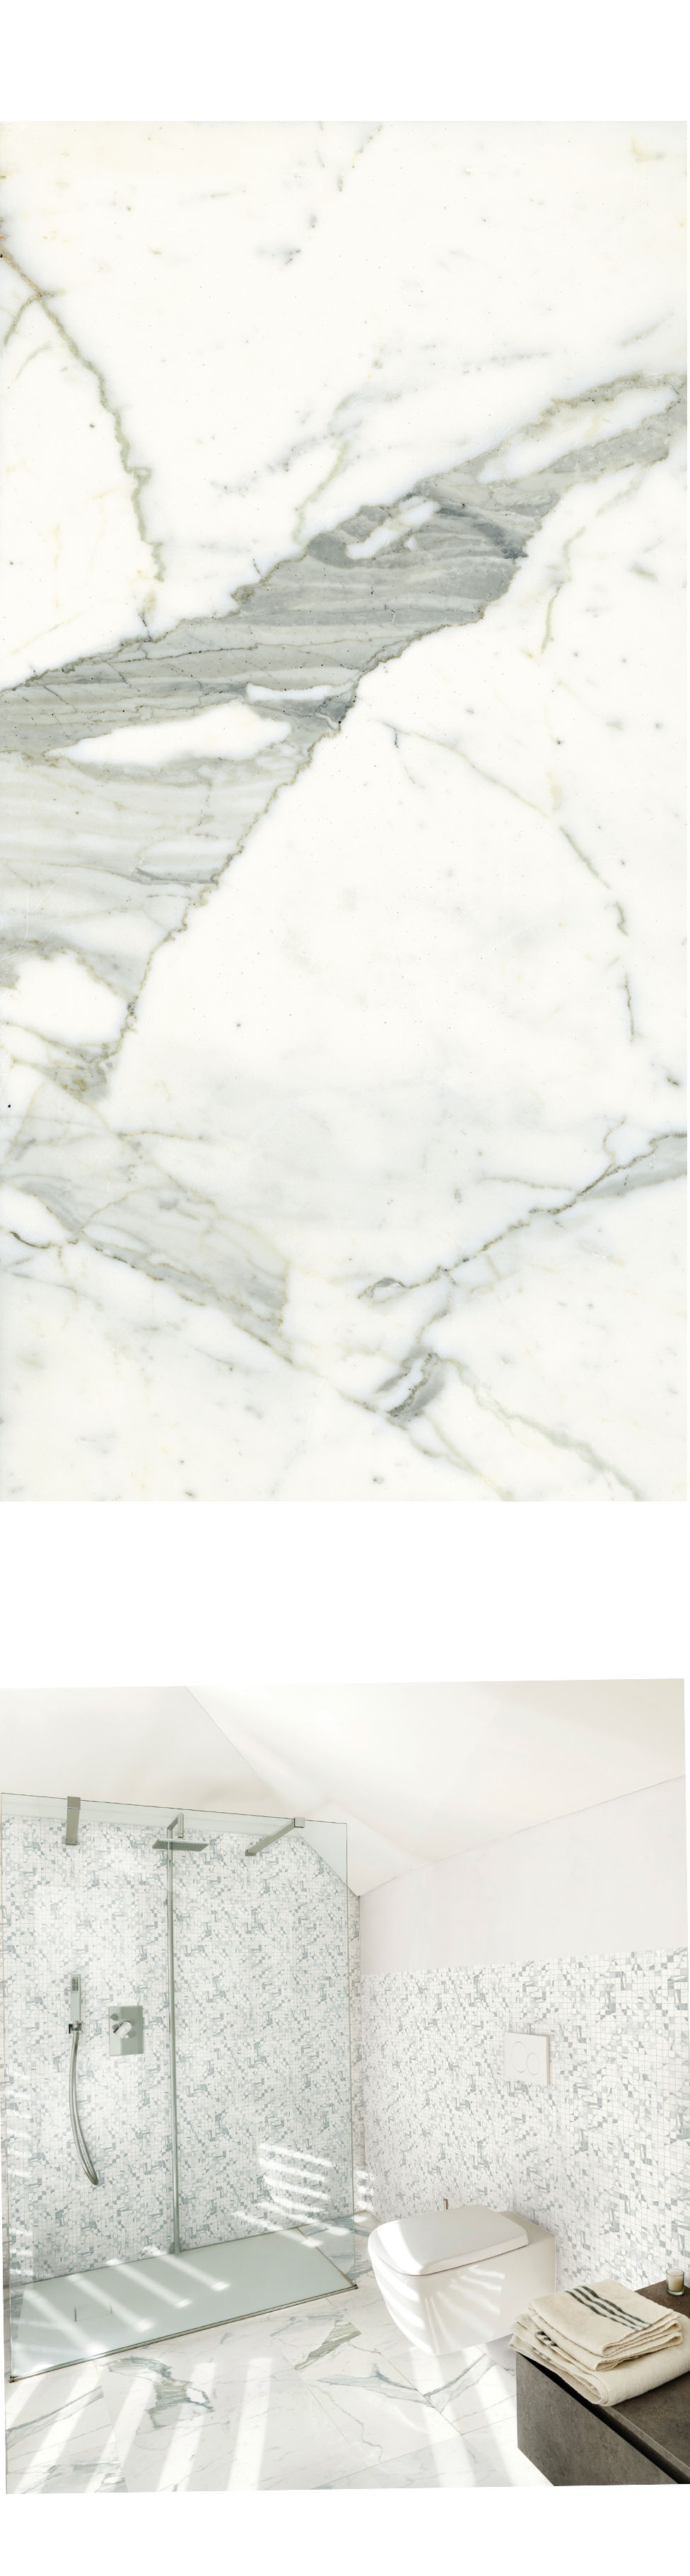 Classic  Statuarietto, The Porcelain Tile That Look Like Marble, But Its  More Durable